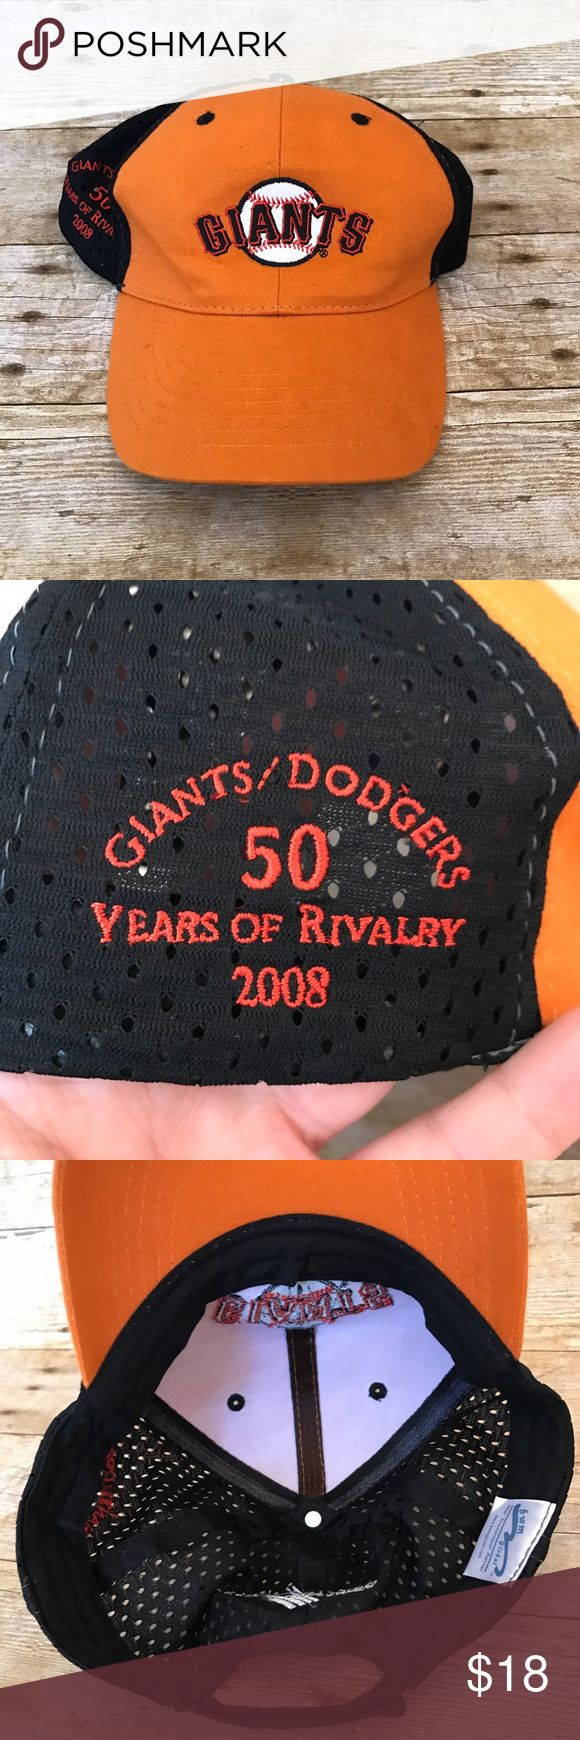 ⚾️San Francisco Giants Baseball Cap - SnapBack hat Excellent Condition - One size - adjustable - SF (San Francisco) Giants Baseball 2008 Dodgers rivalry game day giveaway hat. ‼️FAST SHIPPING‼️ ⚾️⚾️⚾️ SF Giants Accessories Hats